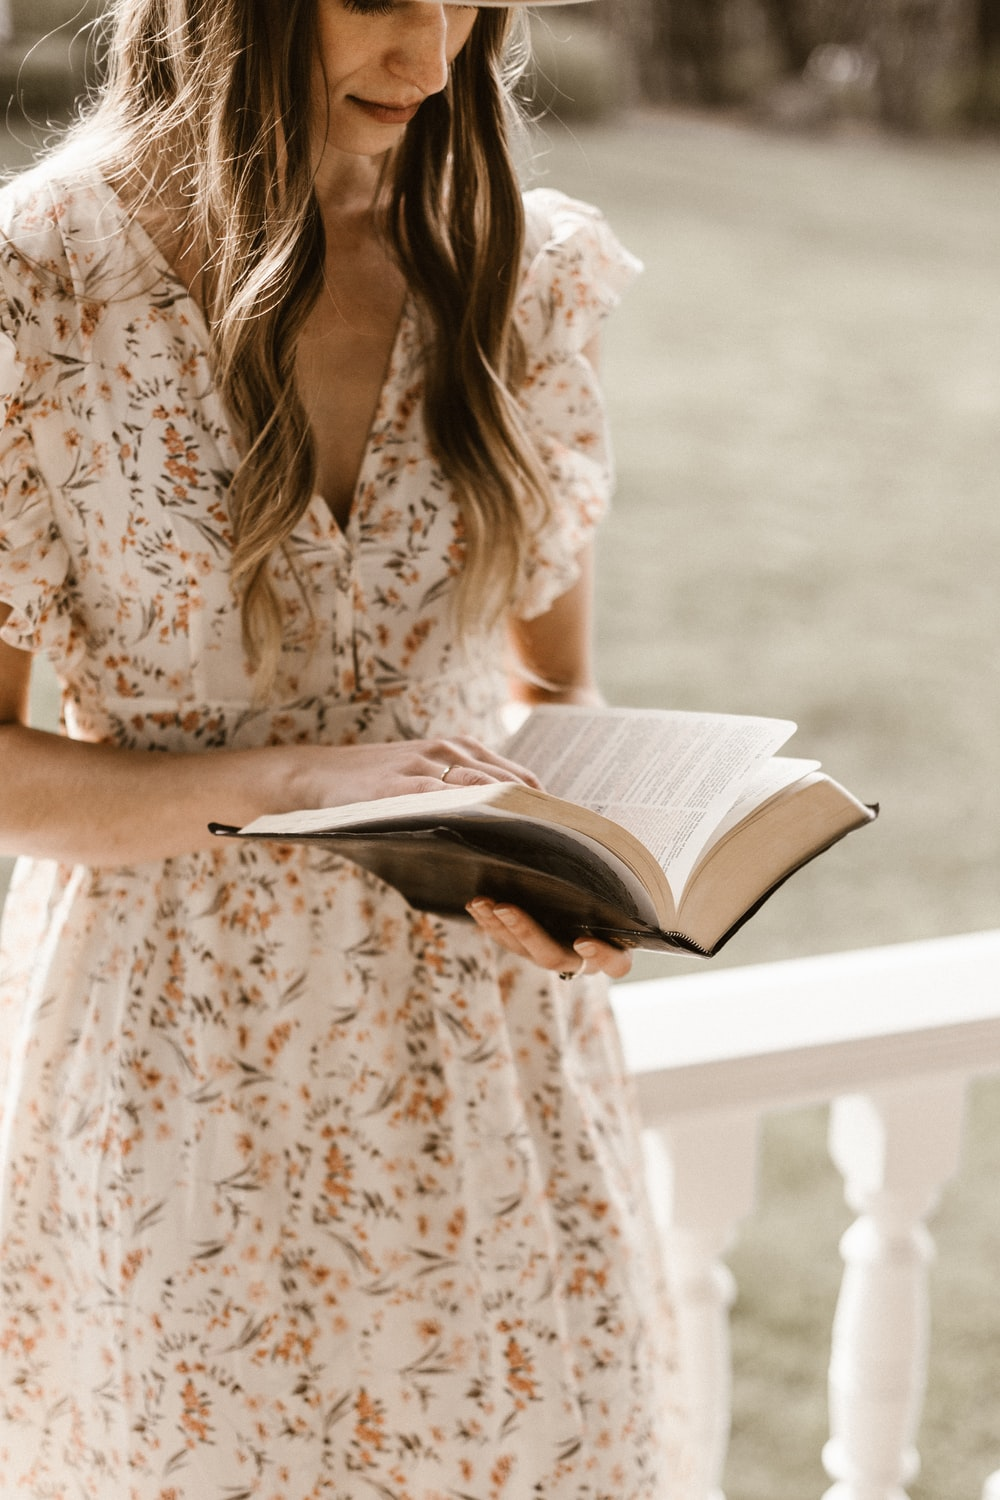 woman in white and brown floral dress reading book